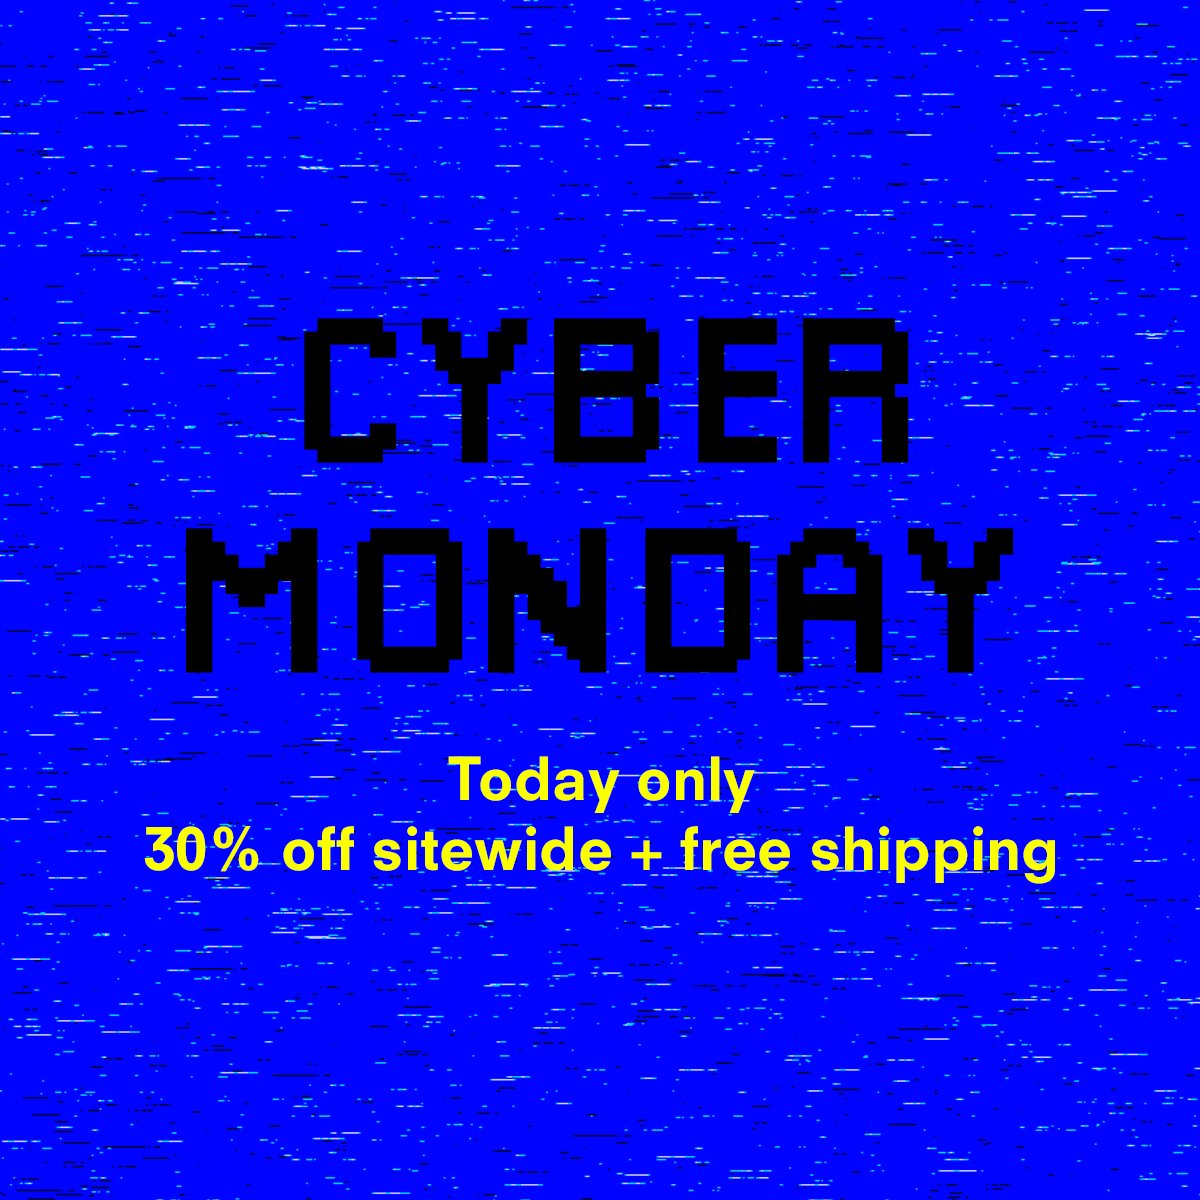 Cyber Monday! Today only, enjoy 30% off sitewide and free delivery #radshop #CyberMonday https://t.co/4f1iO0y2ly https://t.co/LyVM1Cw1ls